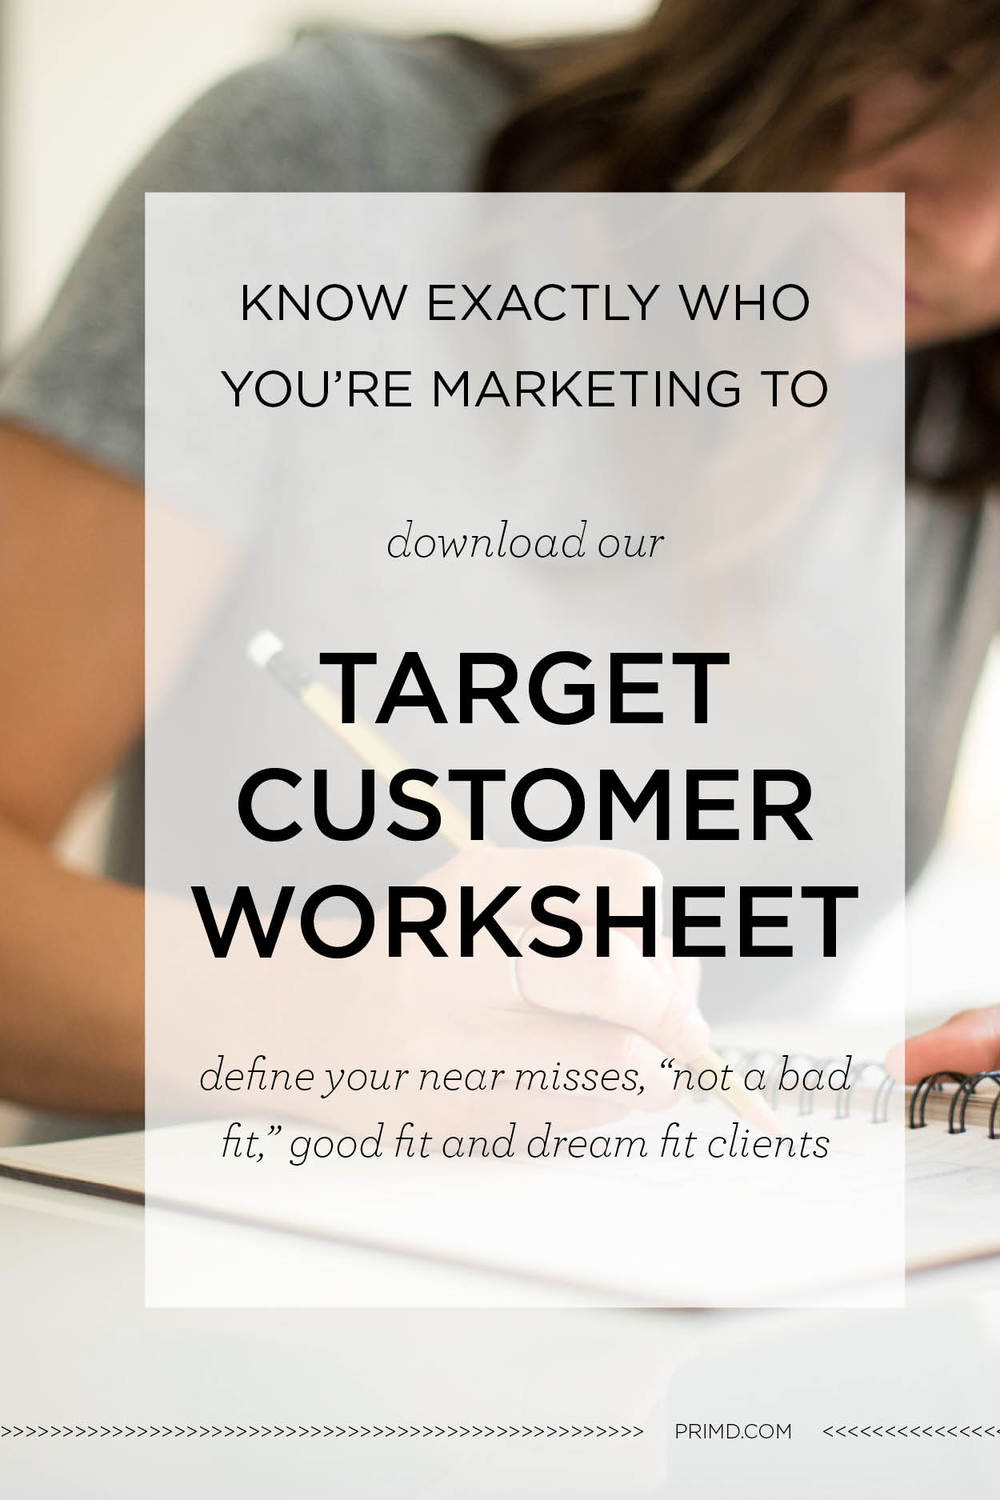 Primd Marketing - Target Customer Worksheet